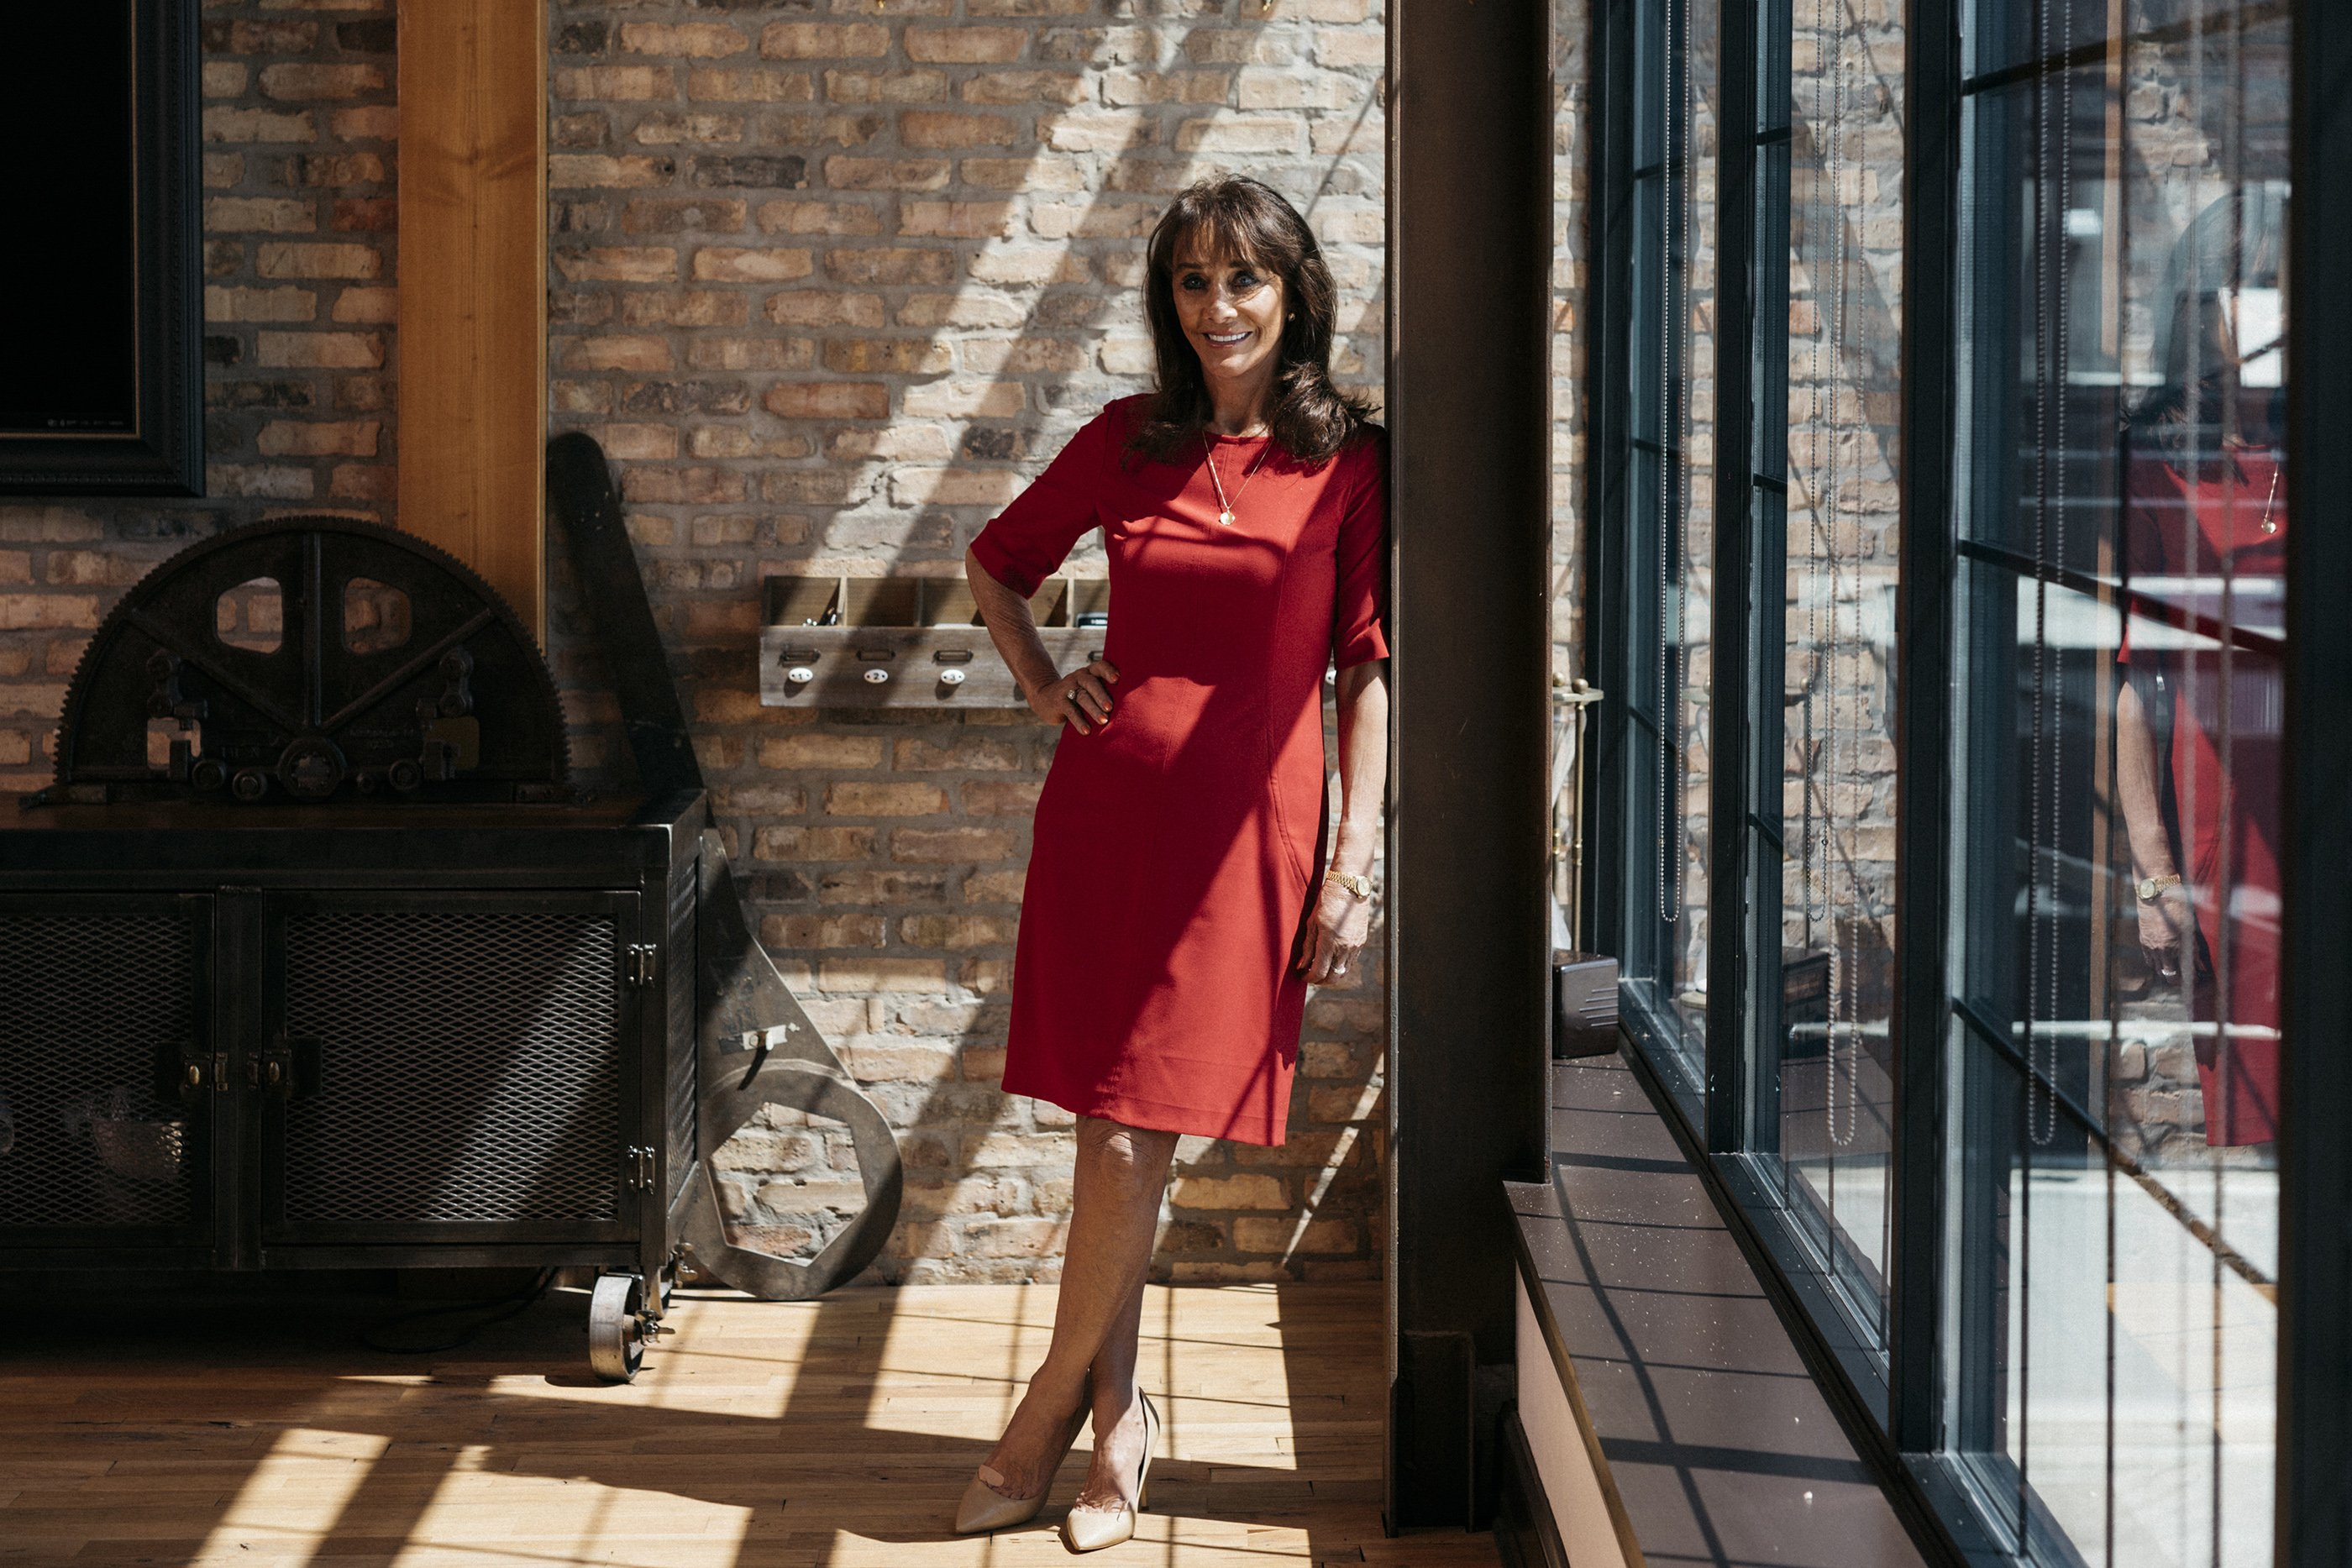 Diane Hendricks at Ironworks, the old foundry complex she converted into a commercial space, in Beloit, Wis., June 6, 2017. Hendricks is remaking Beloit, a town that used to make paper-making machines and diesel engines, into a place where startups can create the next billion dollar idea.